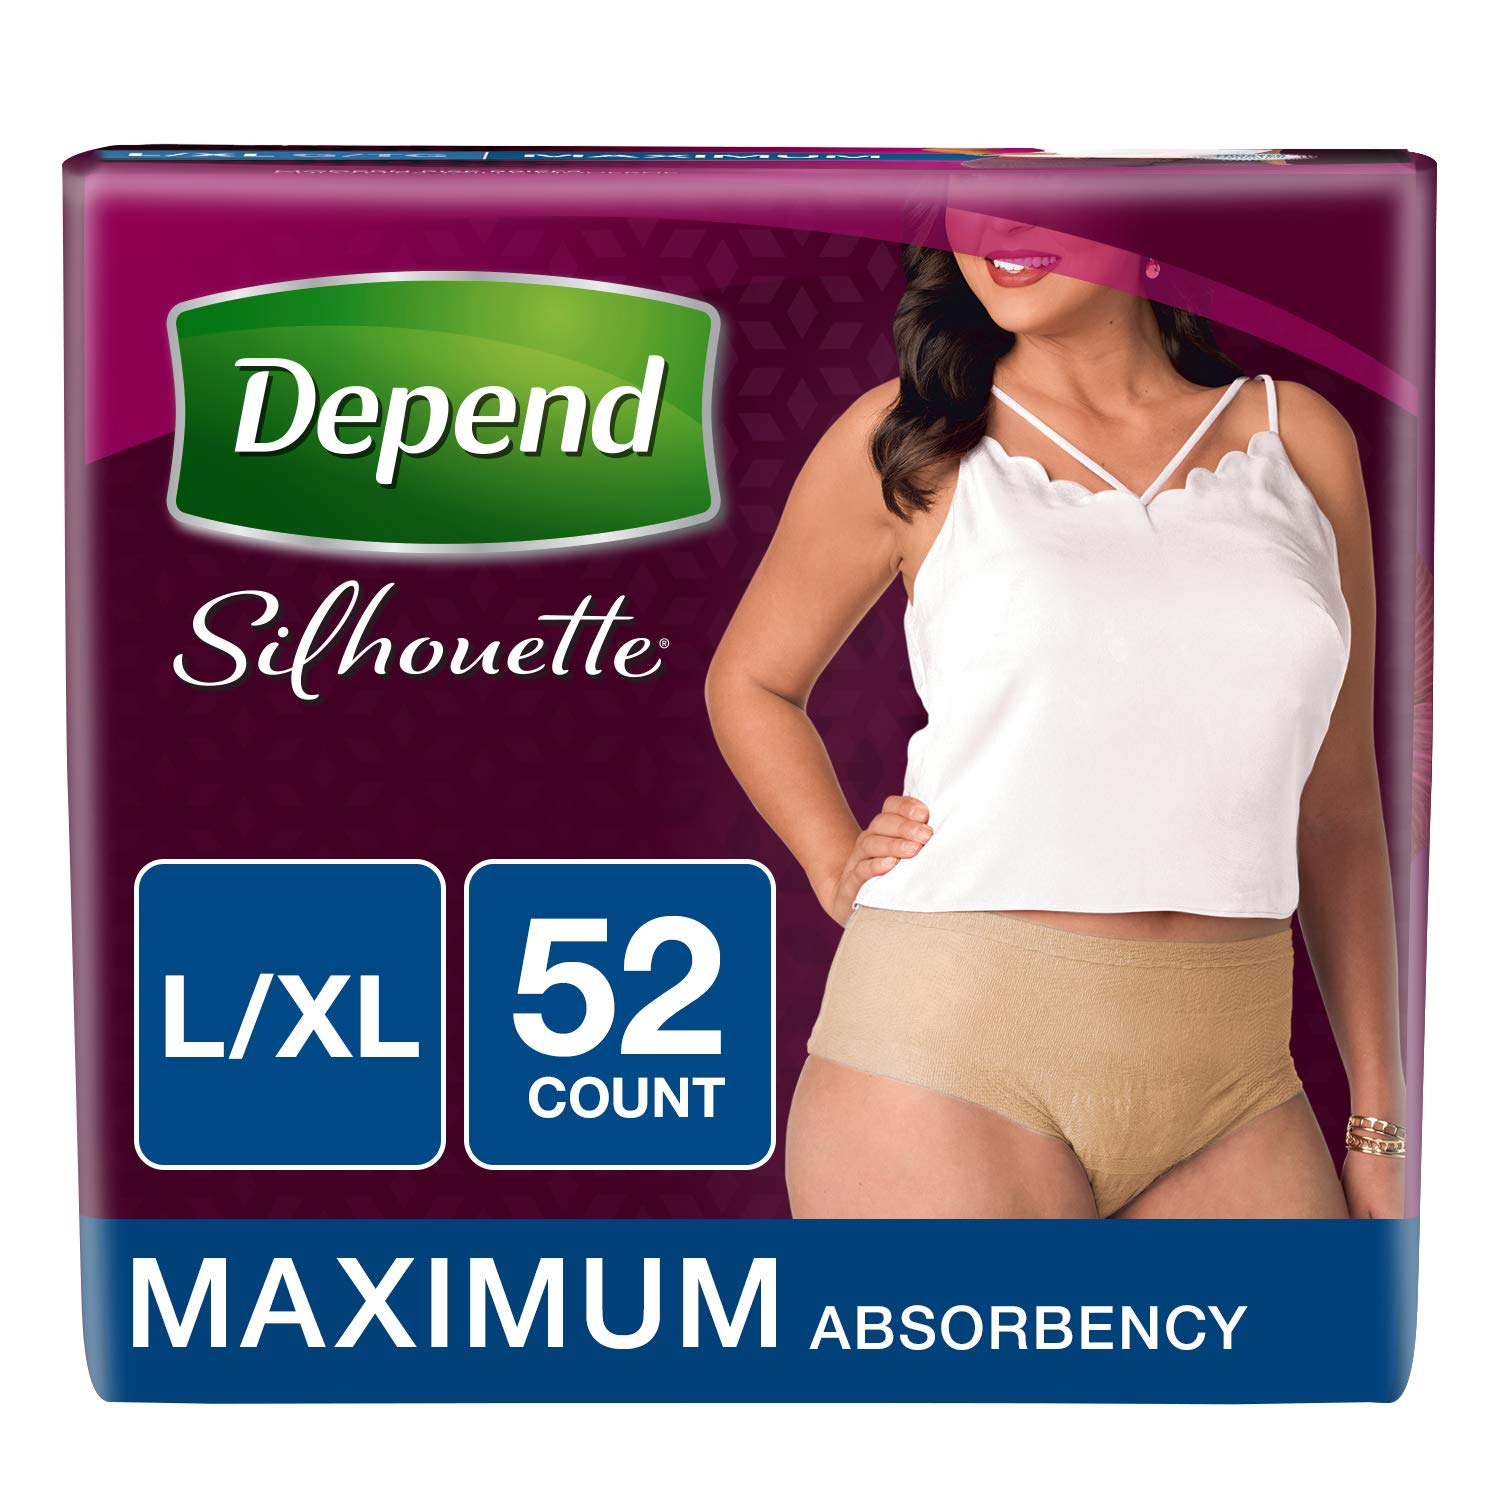 Depend Silhouette Incontinence Underwear for Women, Maximum Absorbency, L/XL, Beige, 52 Count by Depend